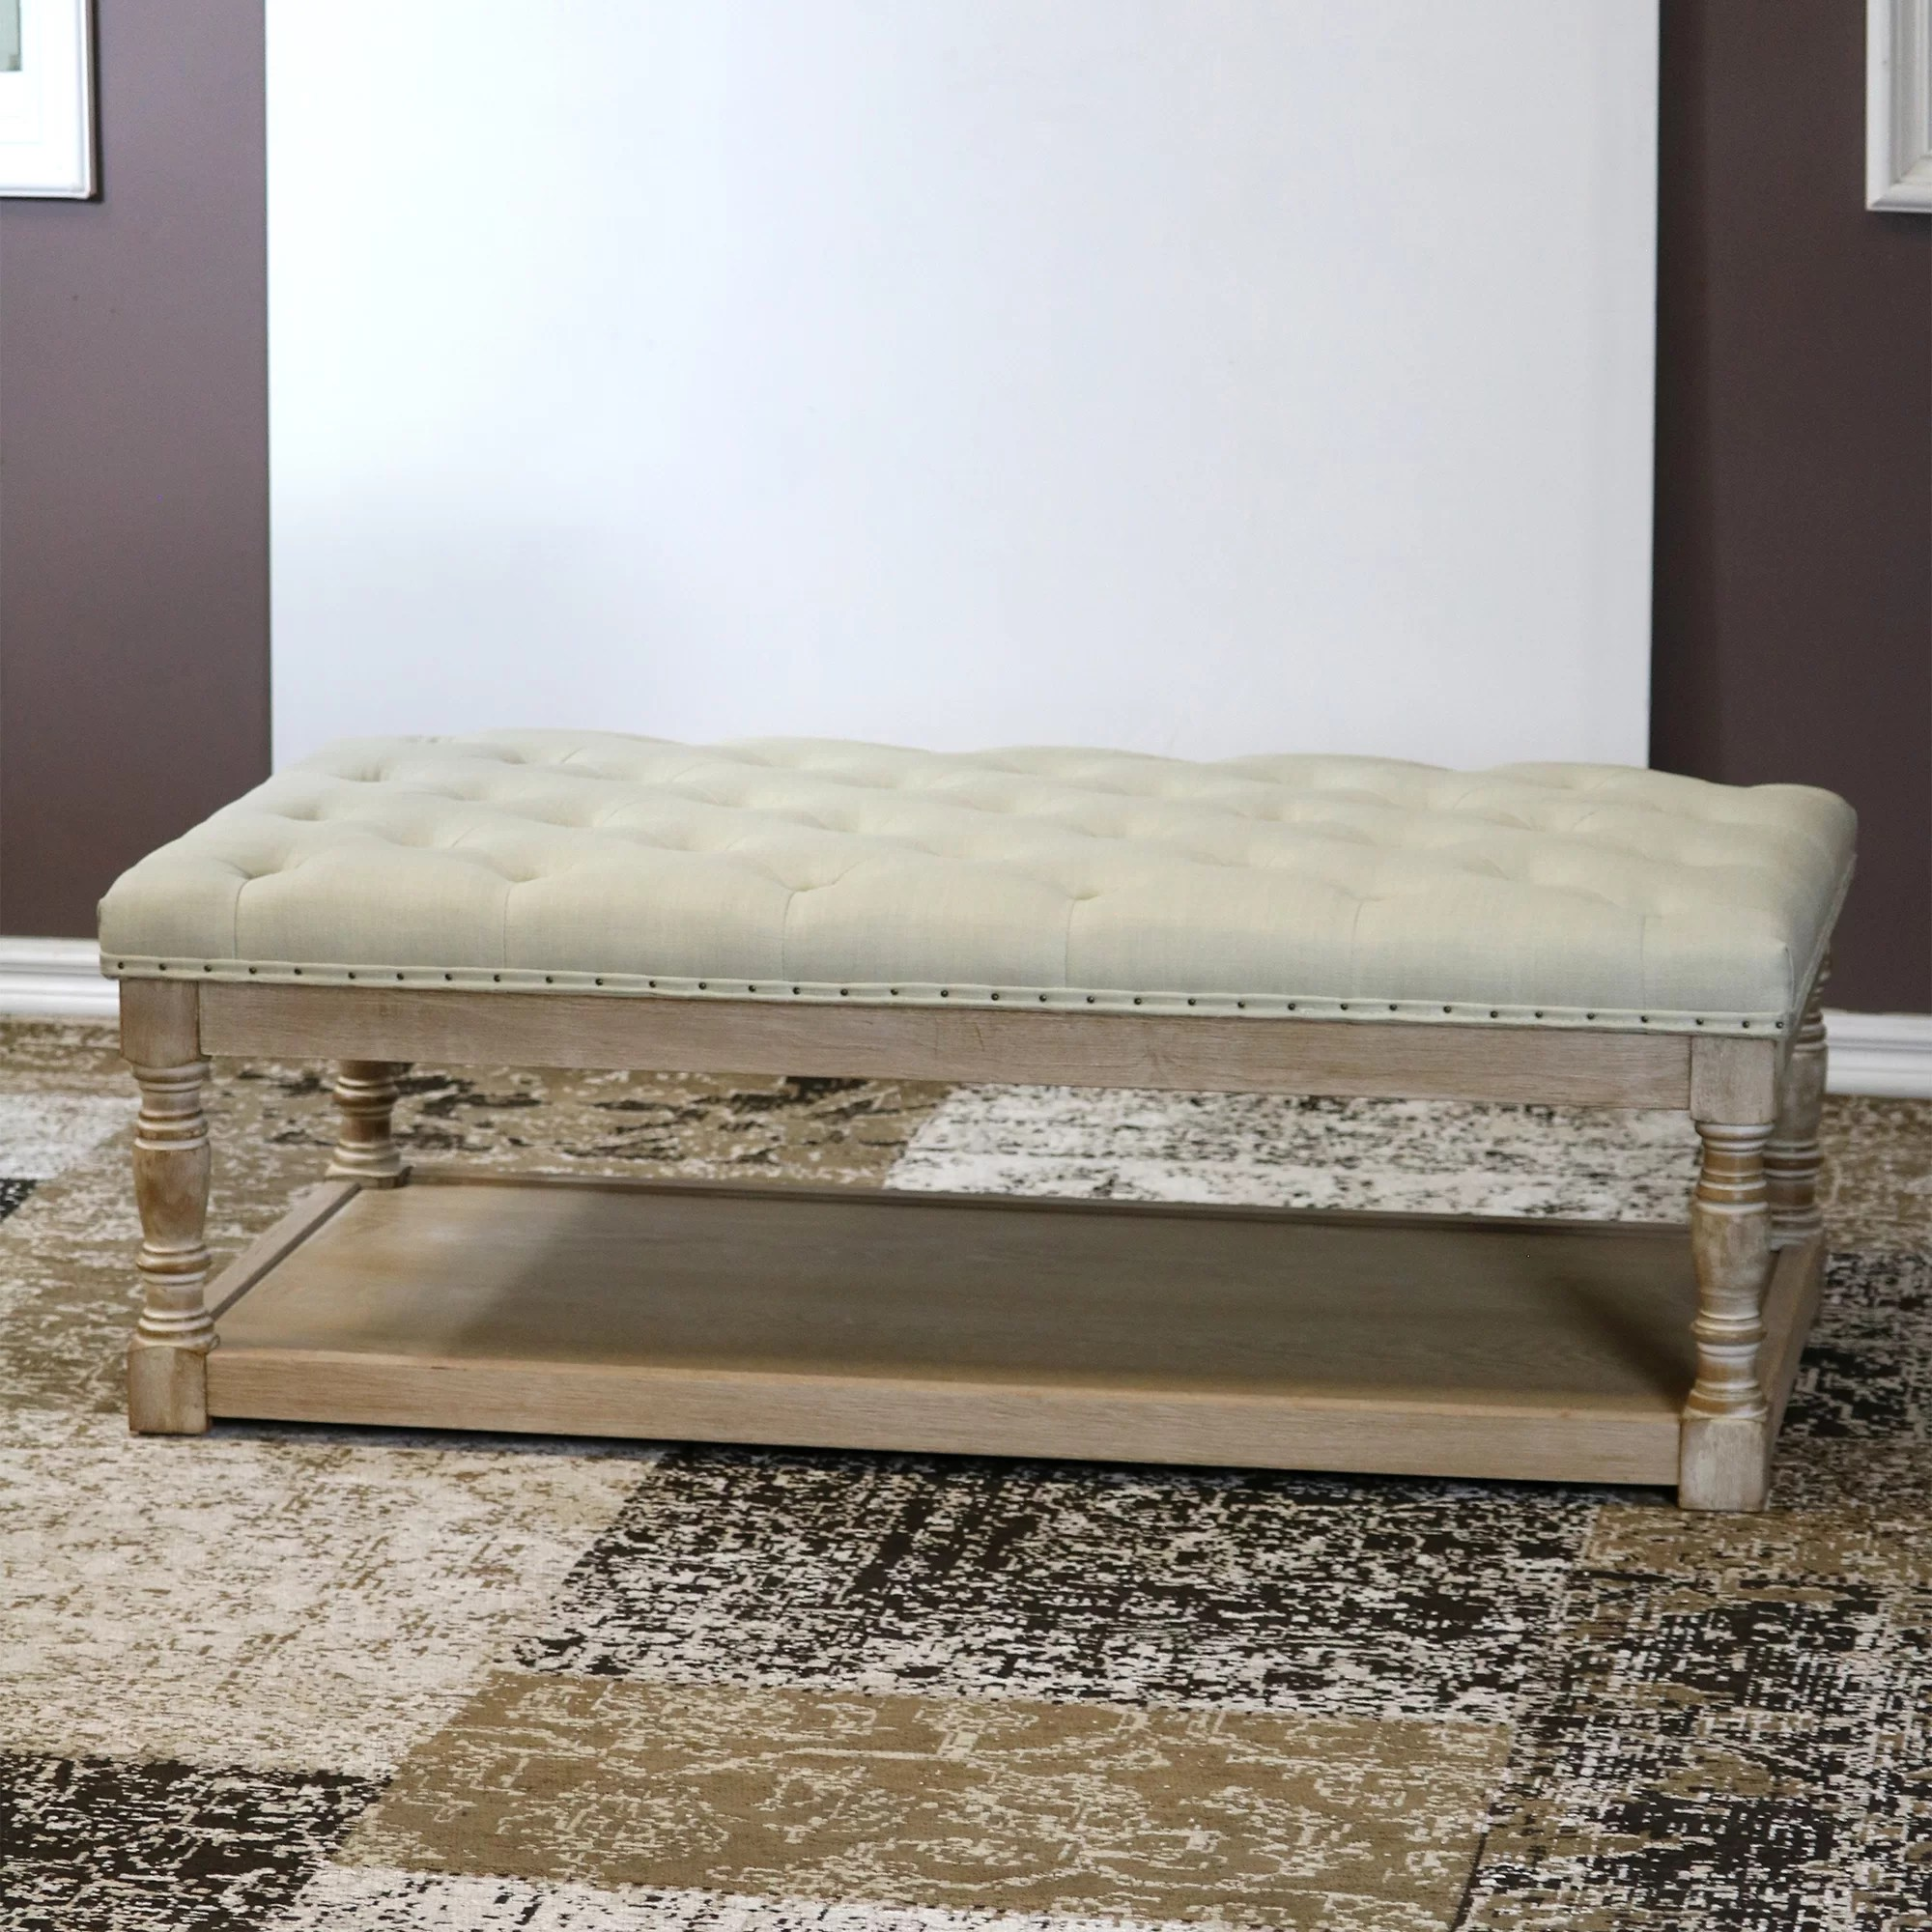 tubbs 48 tufted rectangle cocktail with storage ottoman